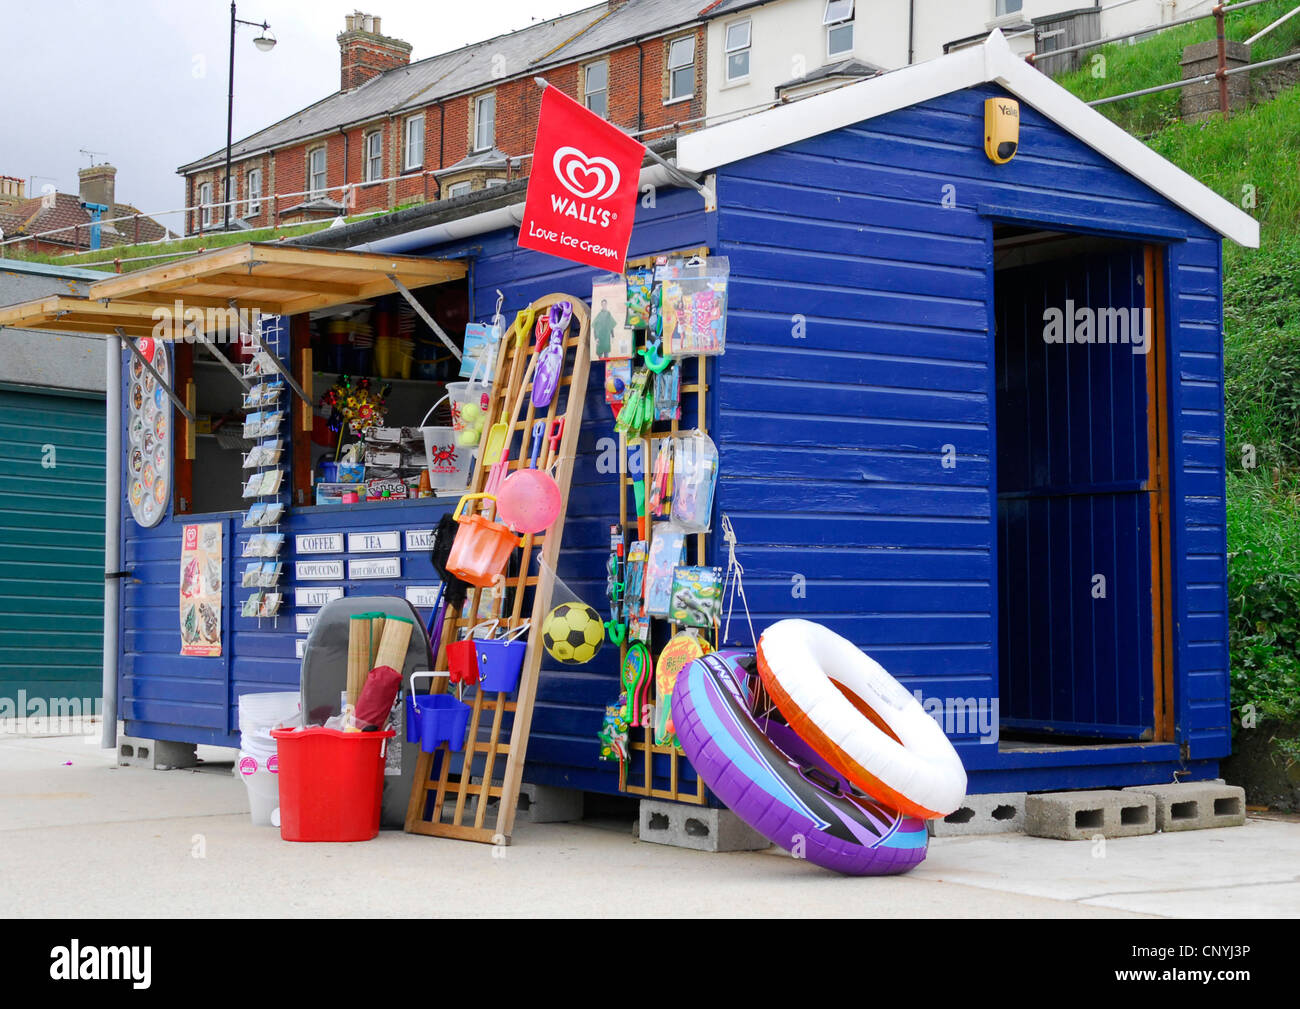 Suffolk - Southwold - seaside stall - colourful display of buckets - spades - postcards - swim floats -ice cream - Stock Image